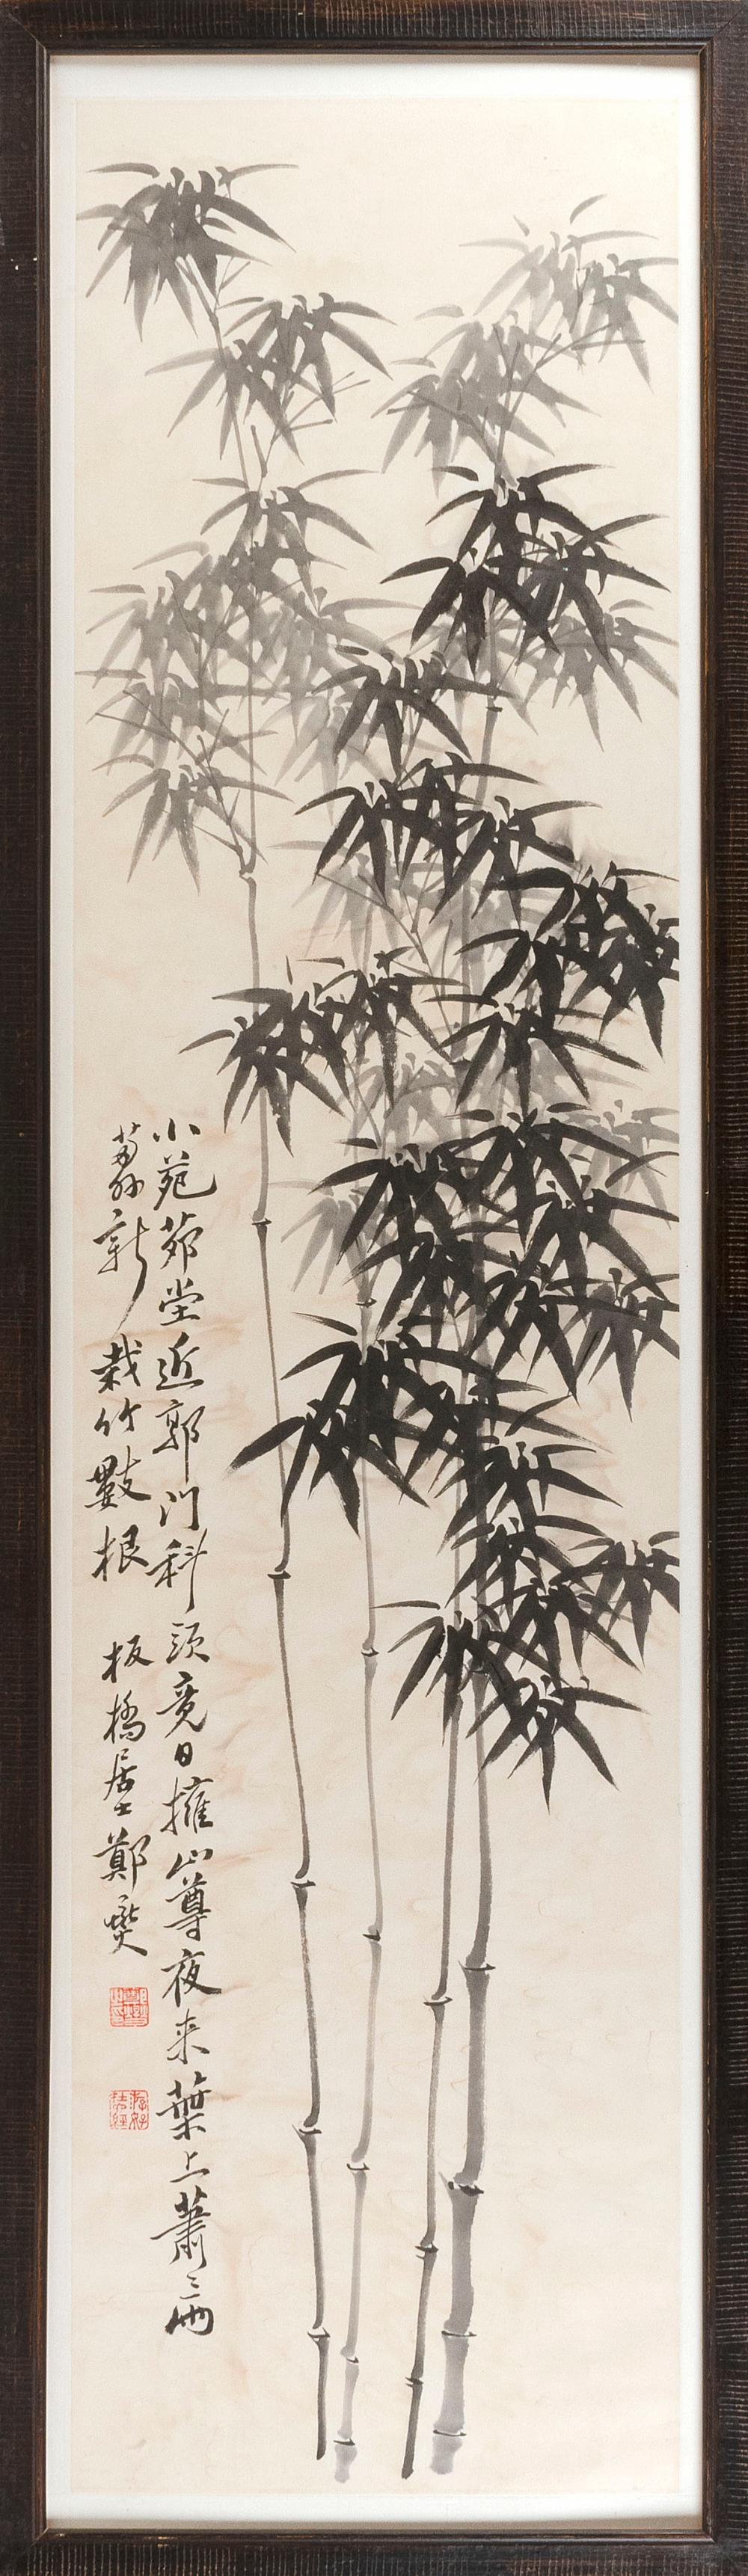 "CHINESE PAINTING ON PAPER Depicting bamboo. Marked with calligraphy and two seal marks. 53.5"" x 13.5"". Framed."